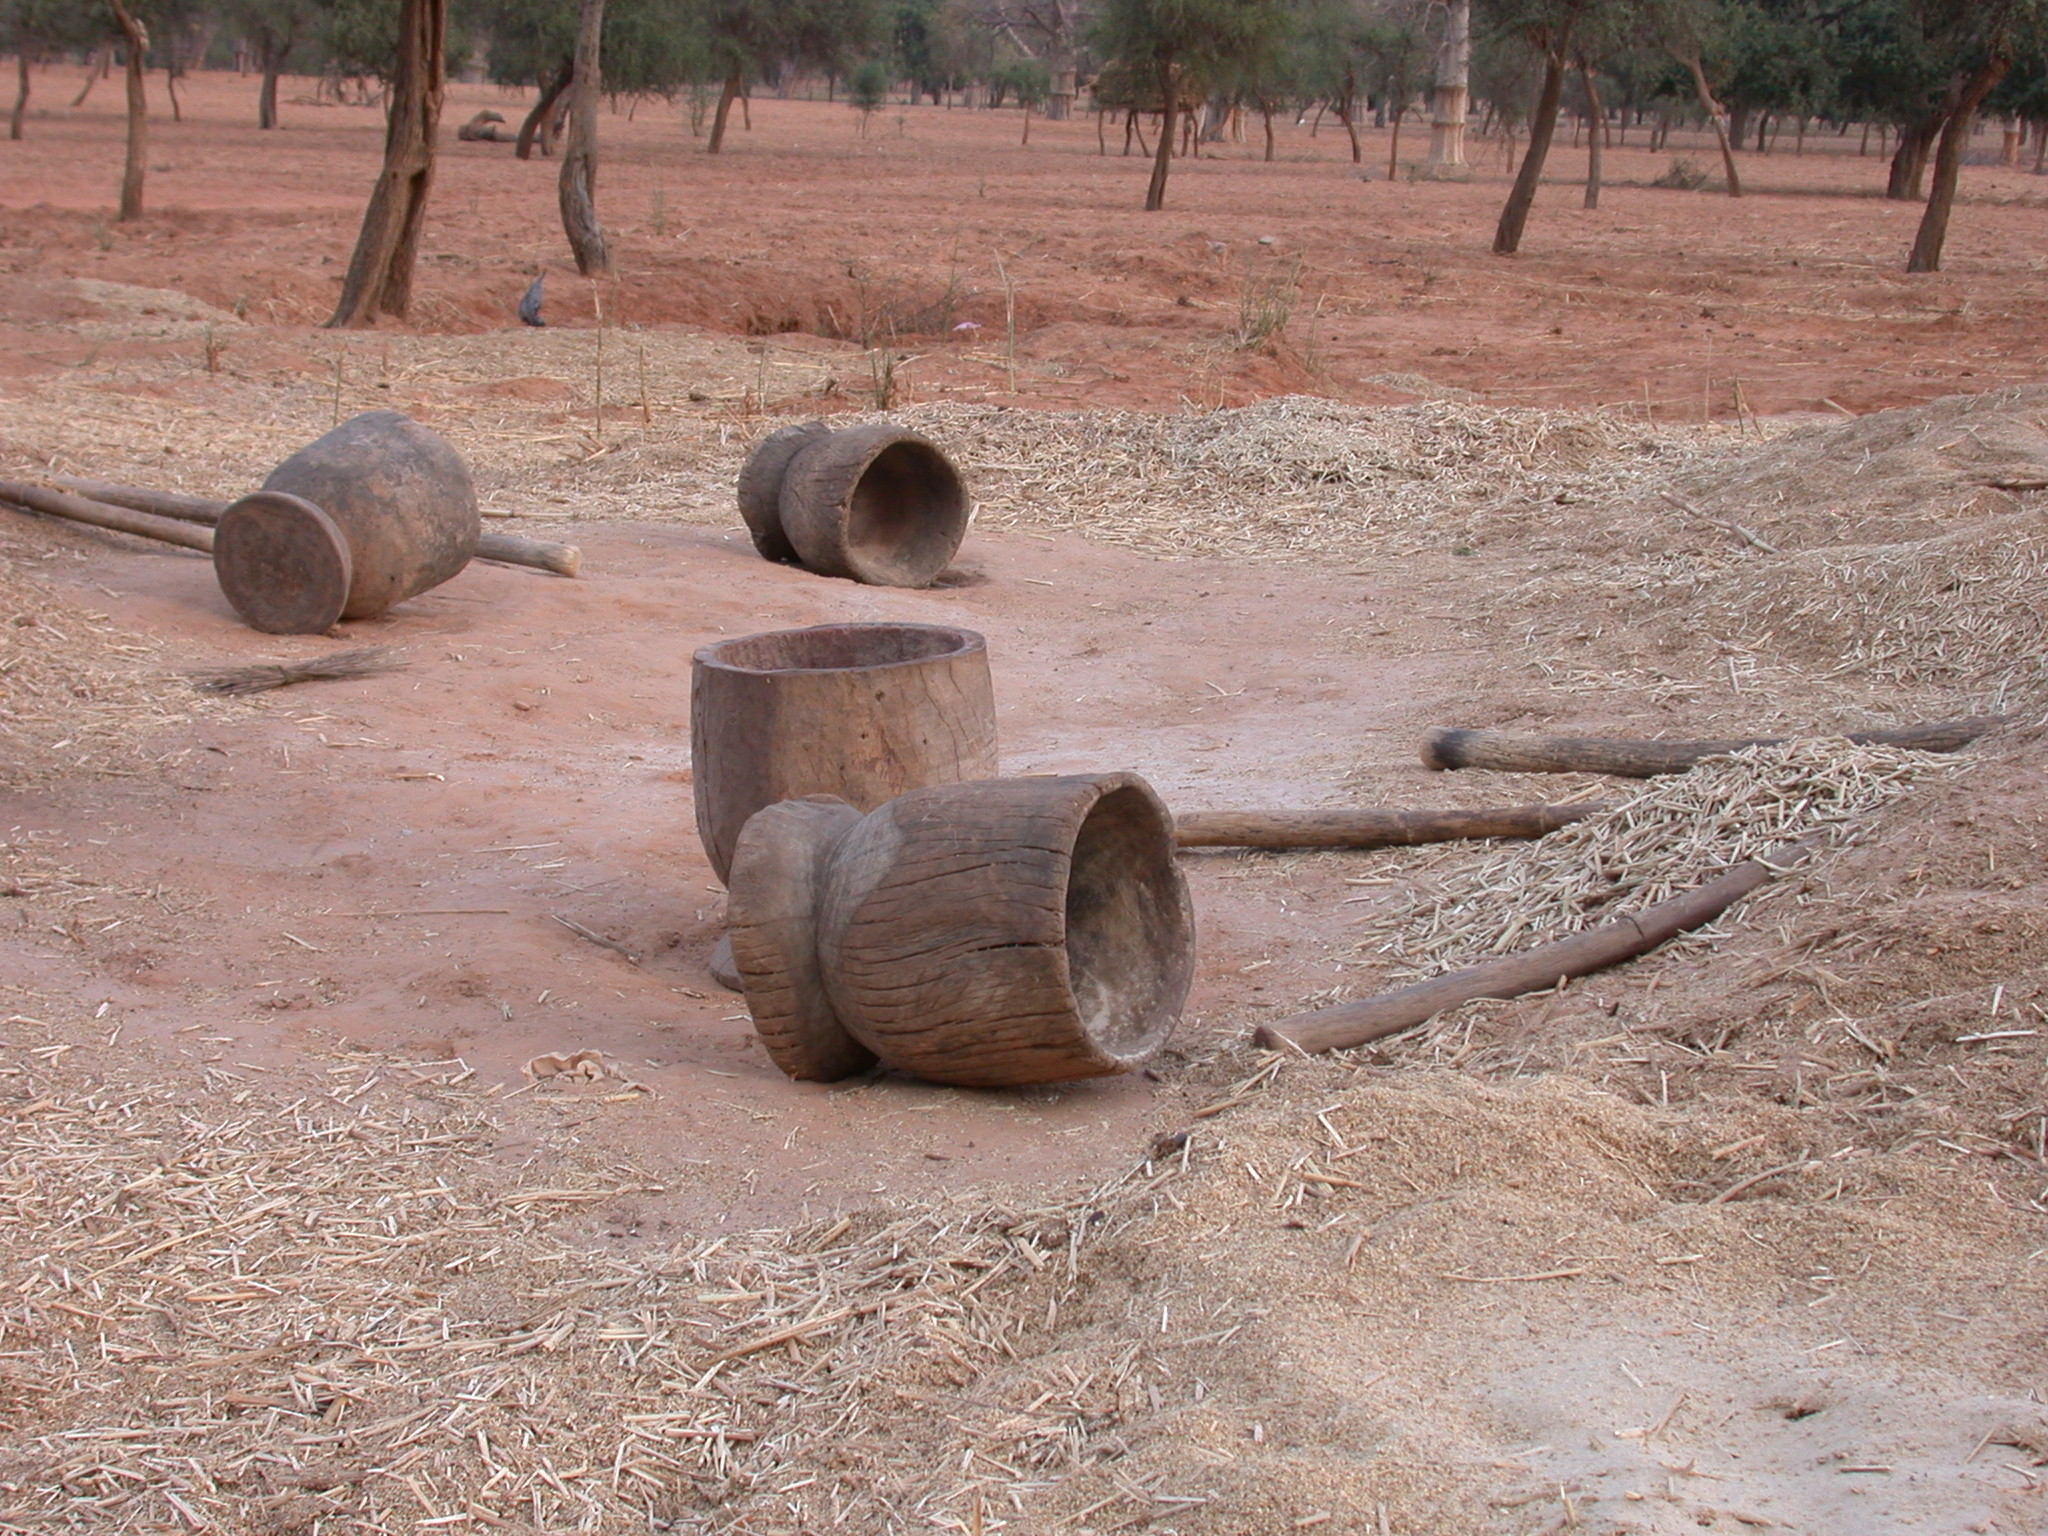 Giant Mortars and Pestles Used to Grind Grain Rhythmically in Ennde Village, Dogon Country, Mali